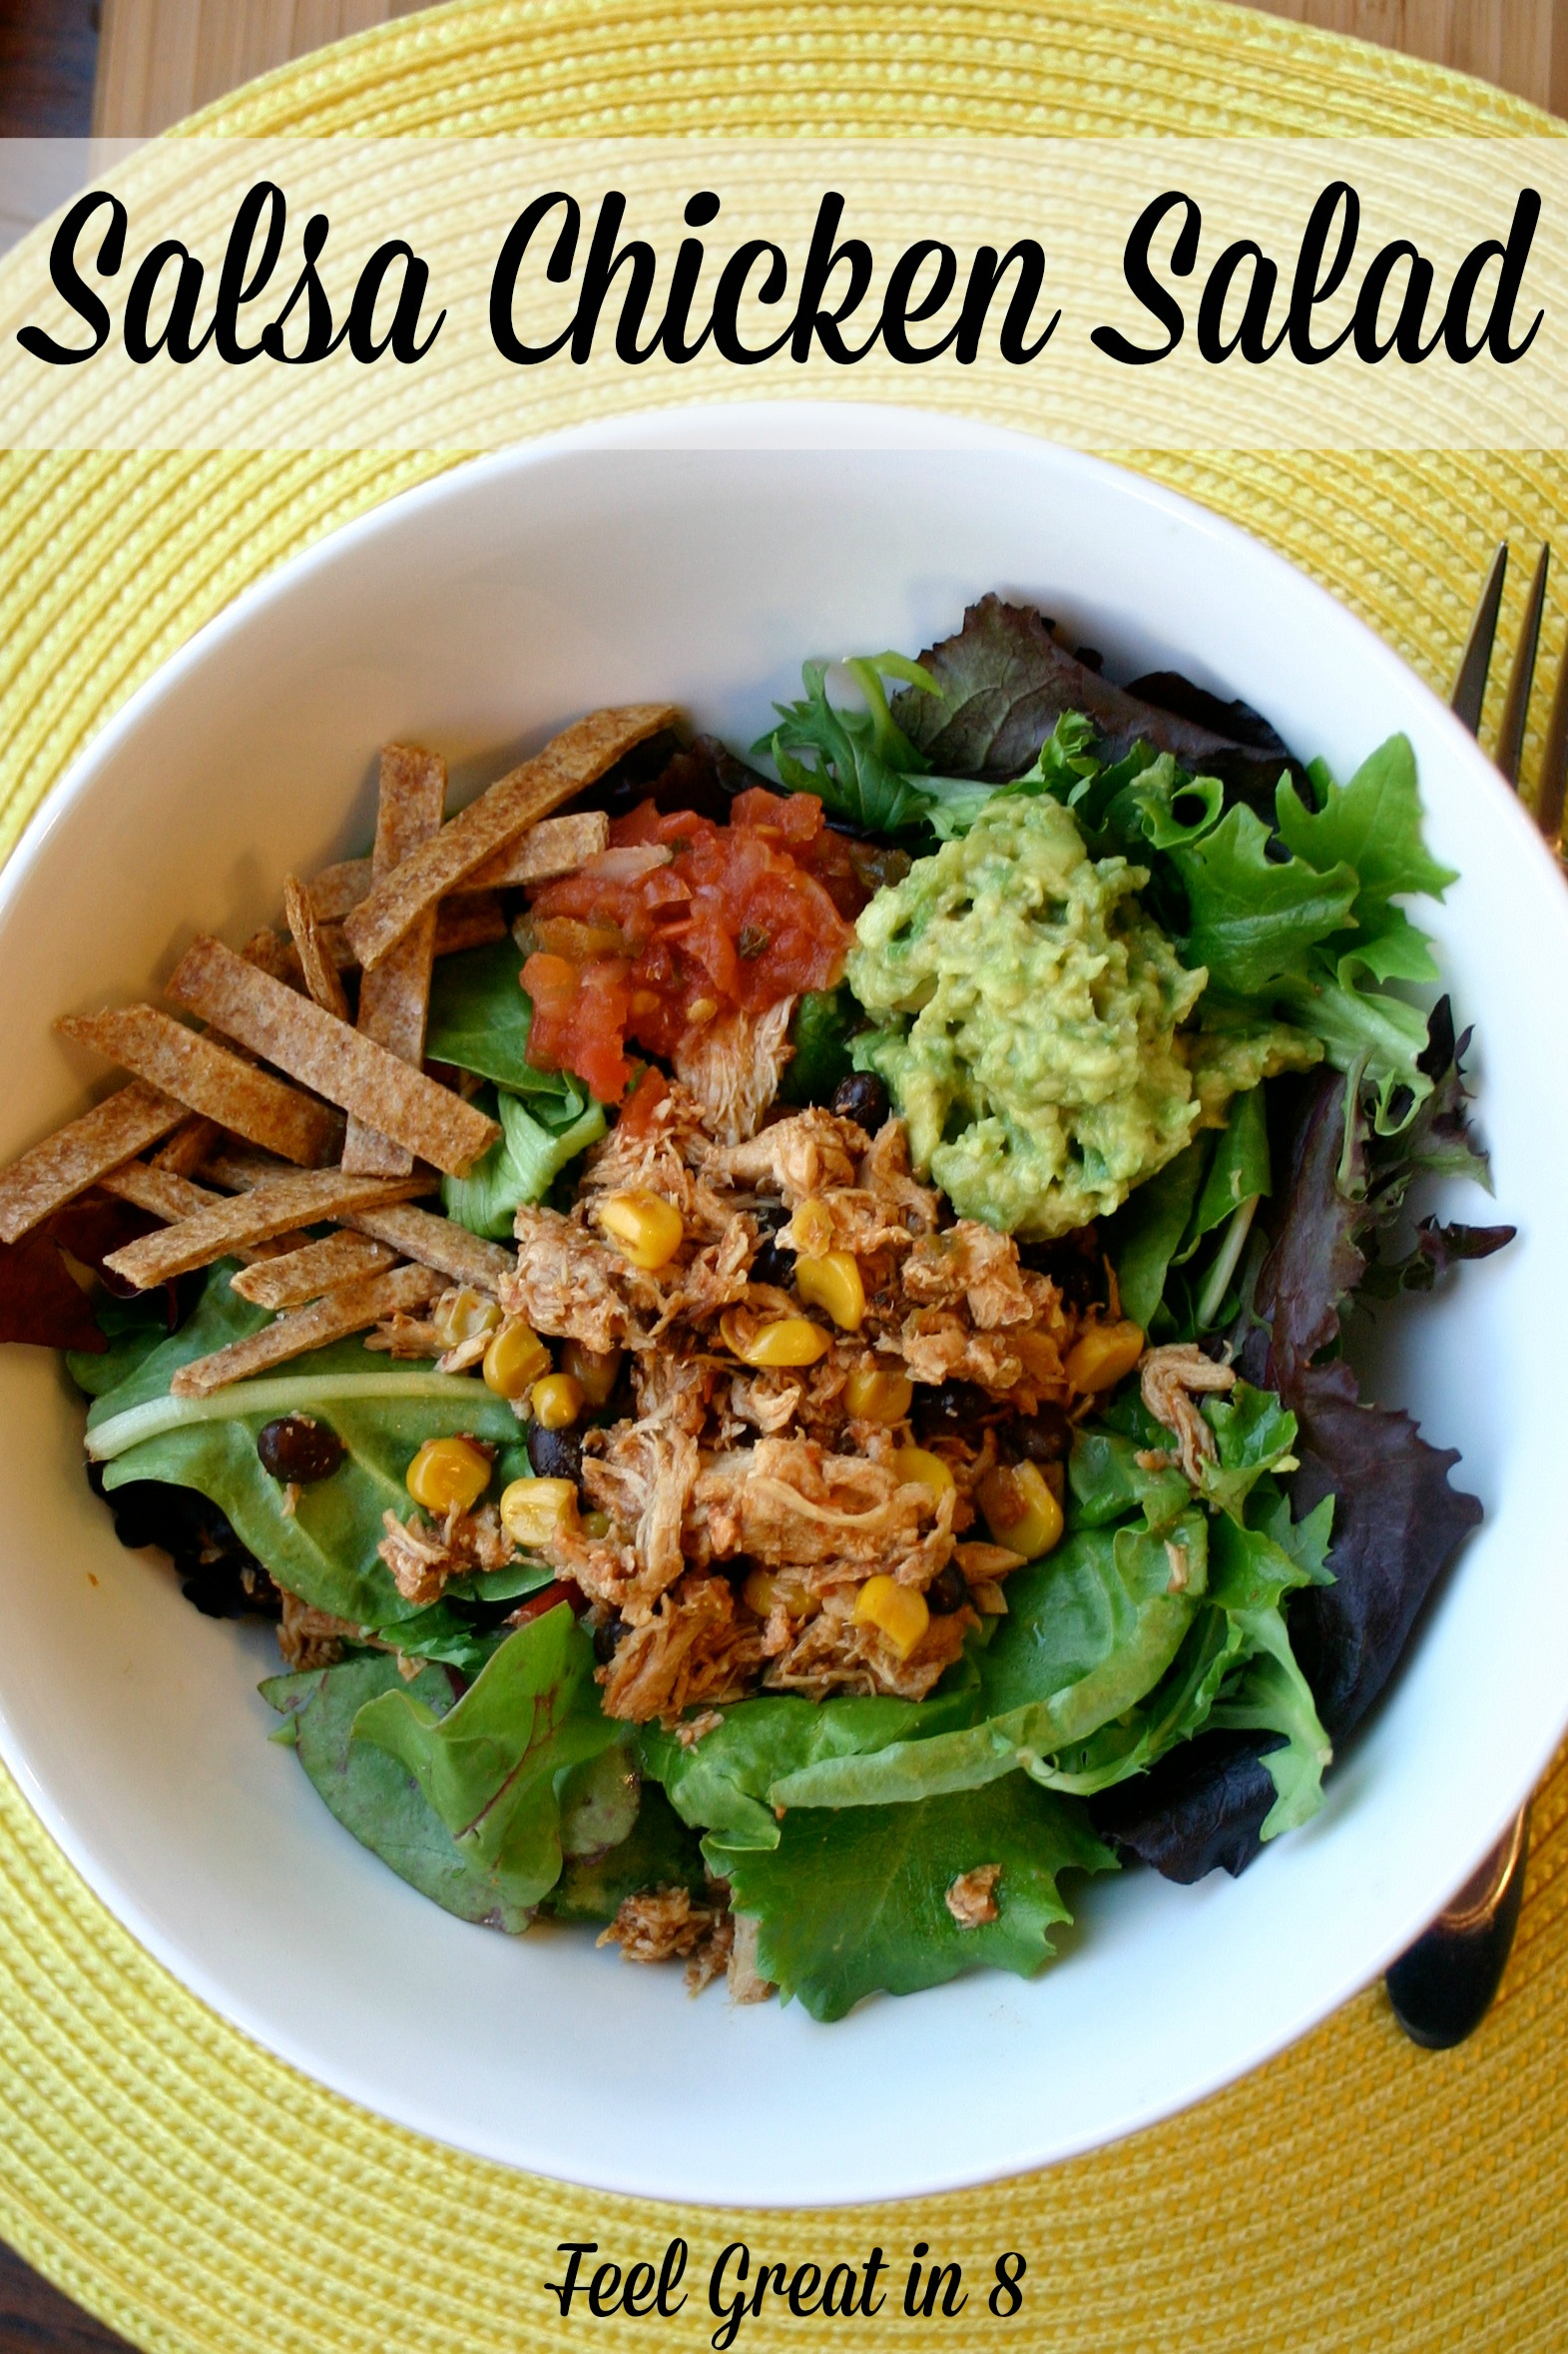 Salsa chicken salad feel great in 8 blog salsachickensalad salsa chicken salad forumfinder Images